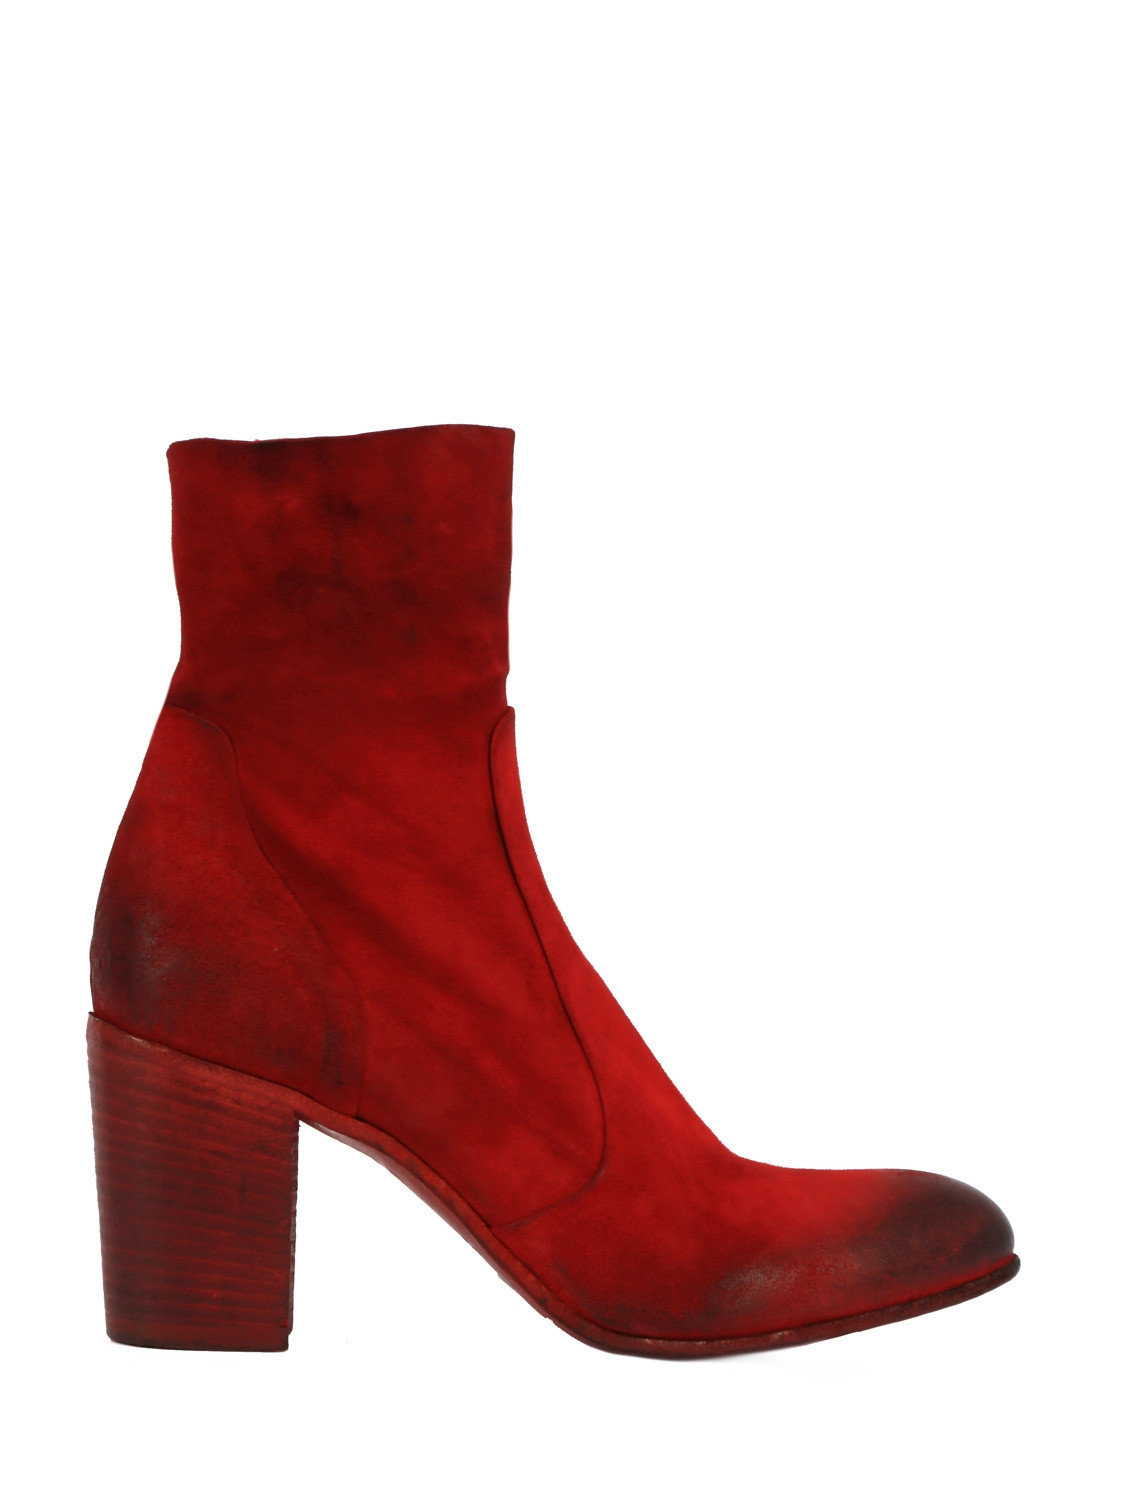 Leather Ankle Boots PE4880 80 mm Heel